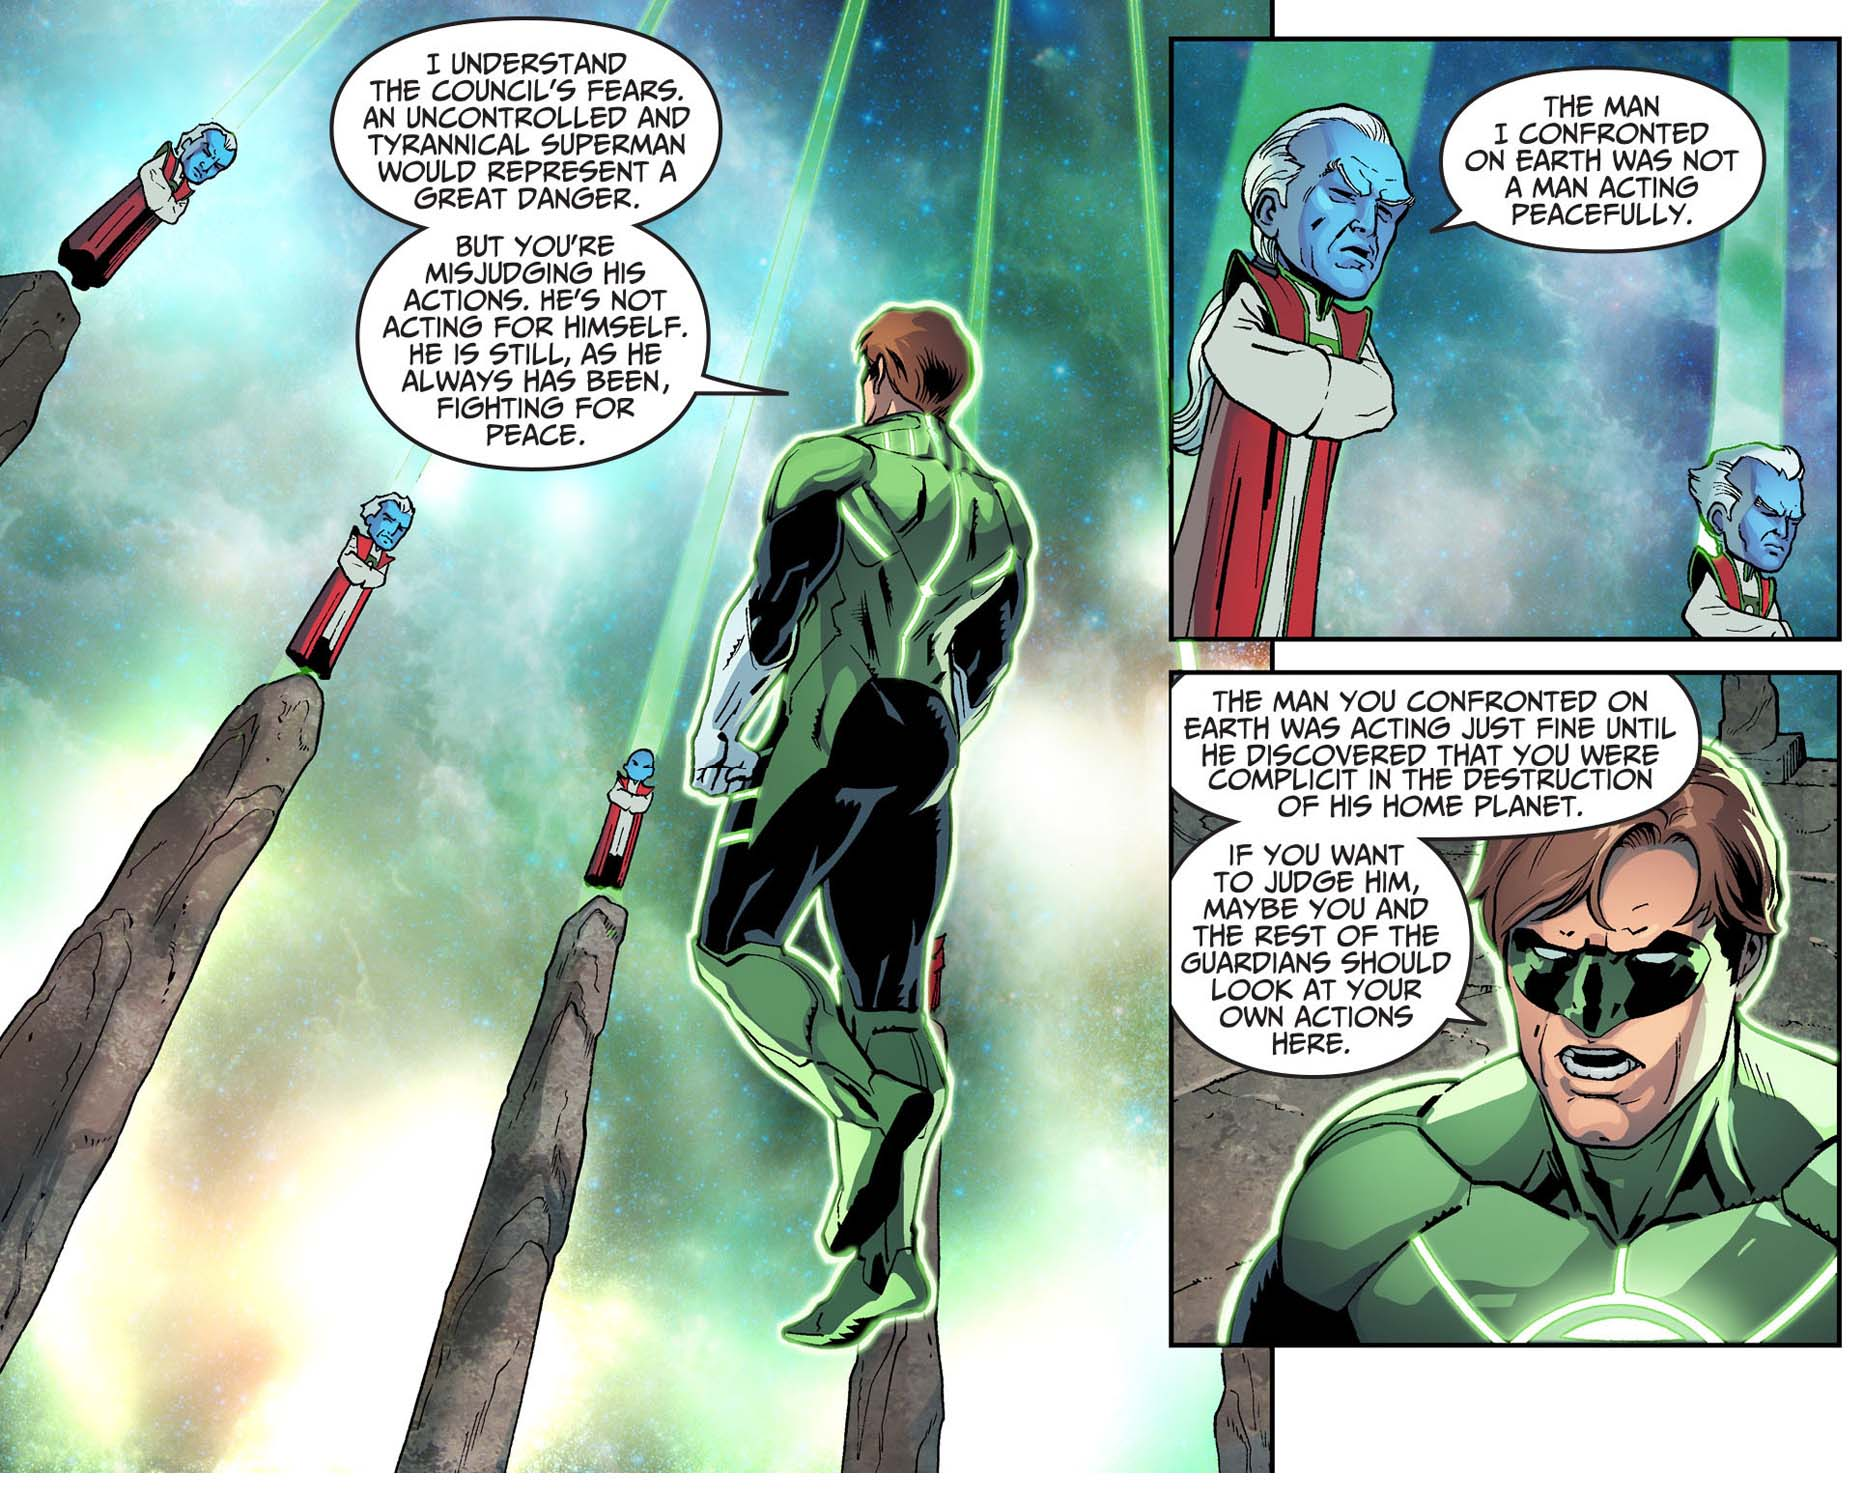 hal jordan defends superman from the guardians